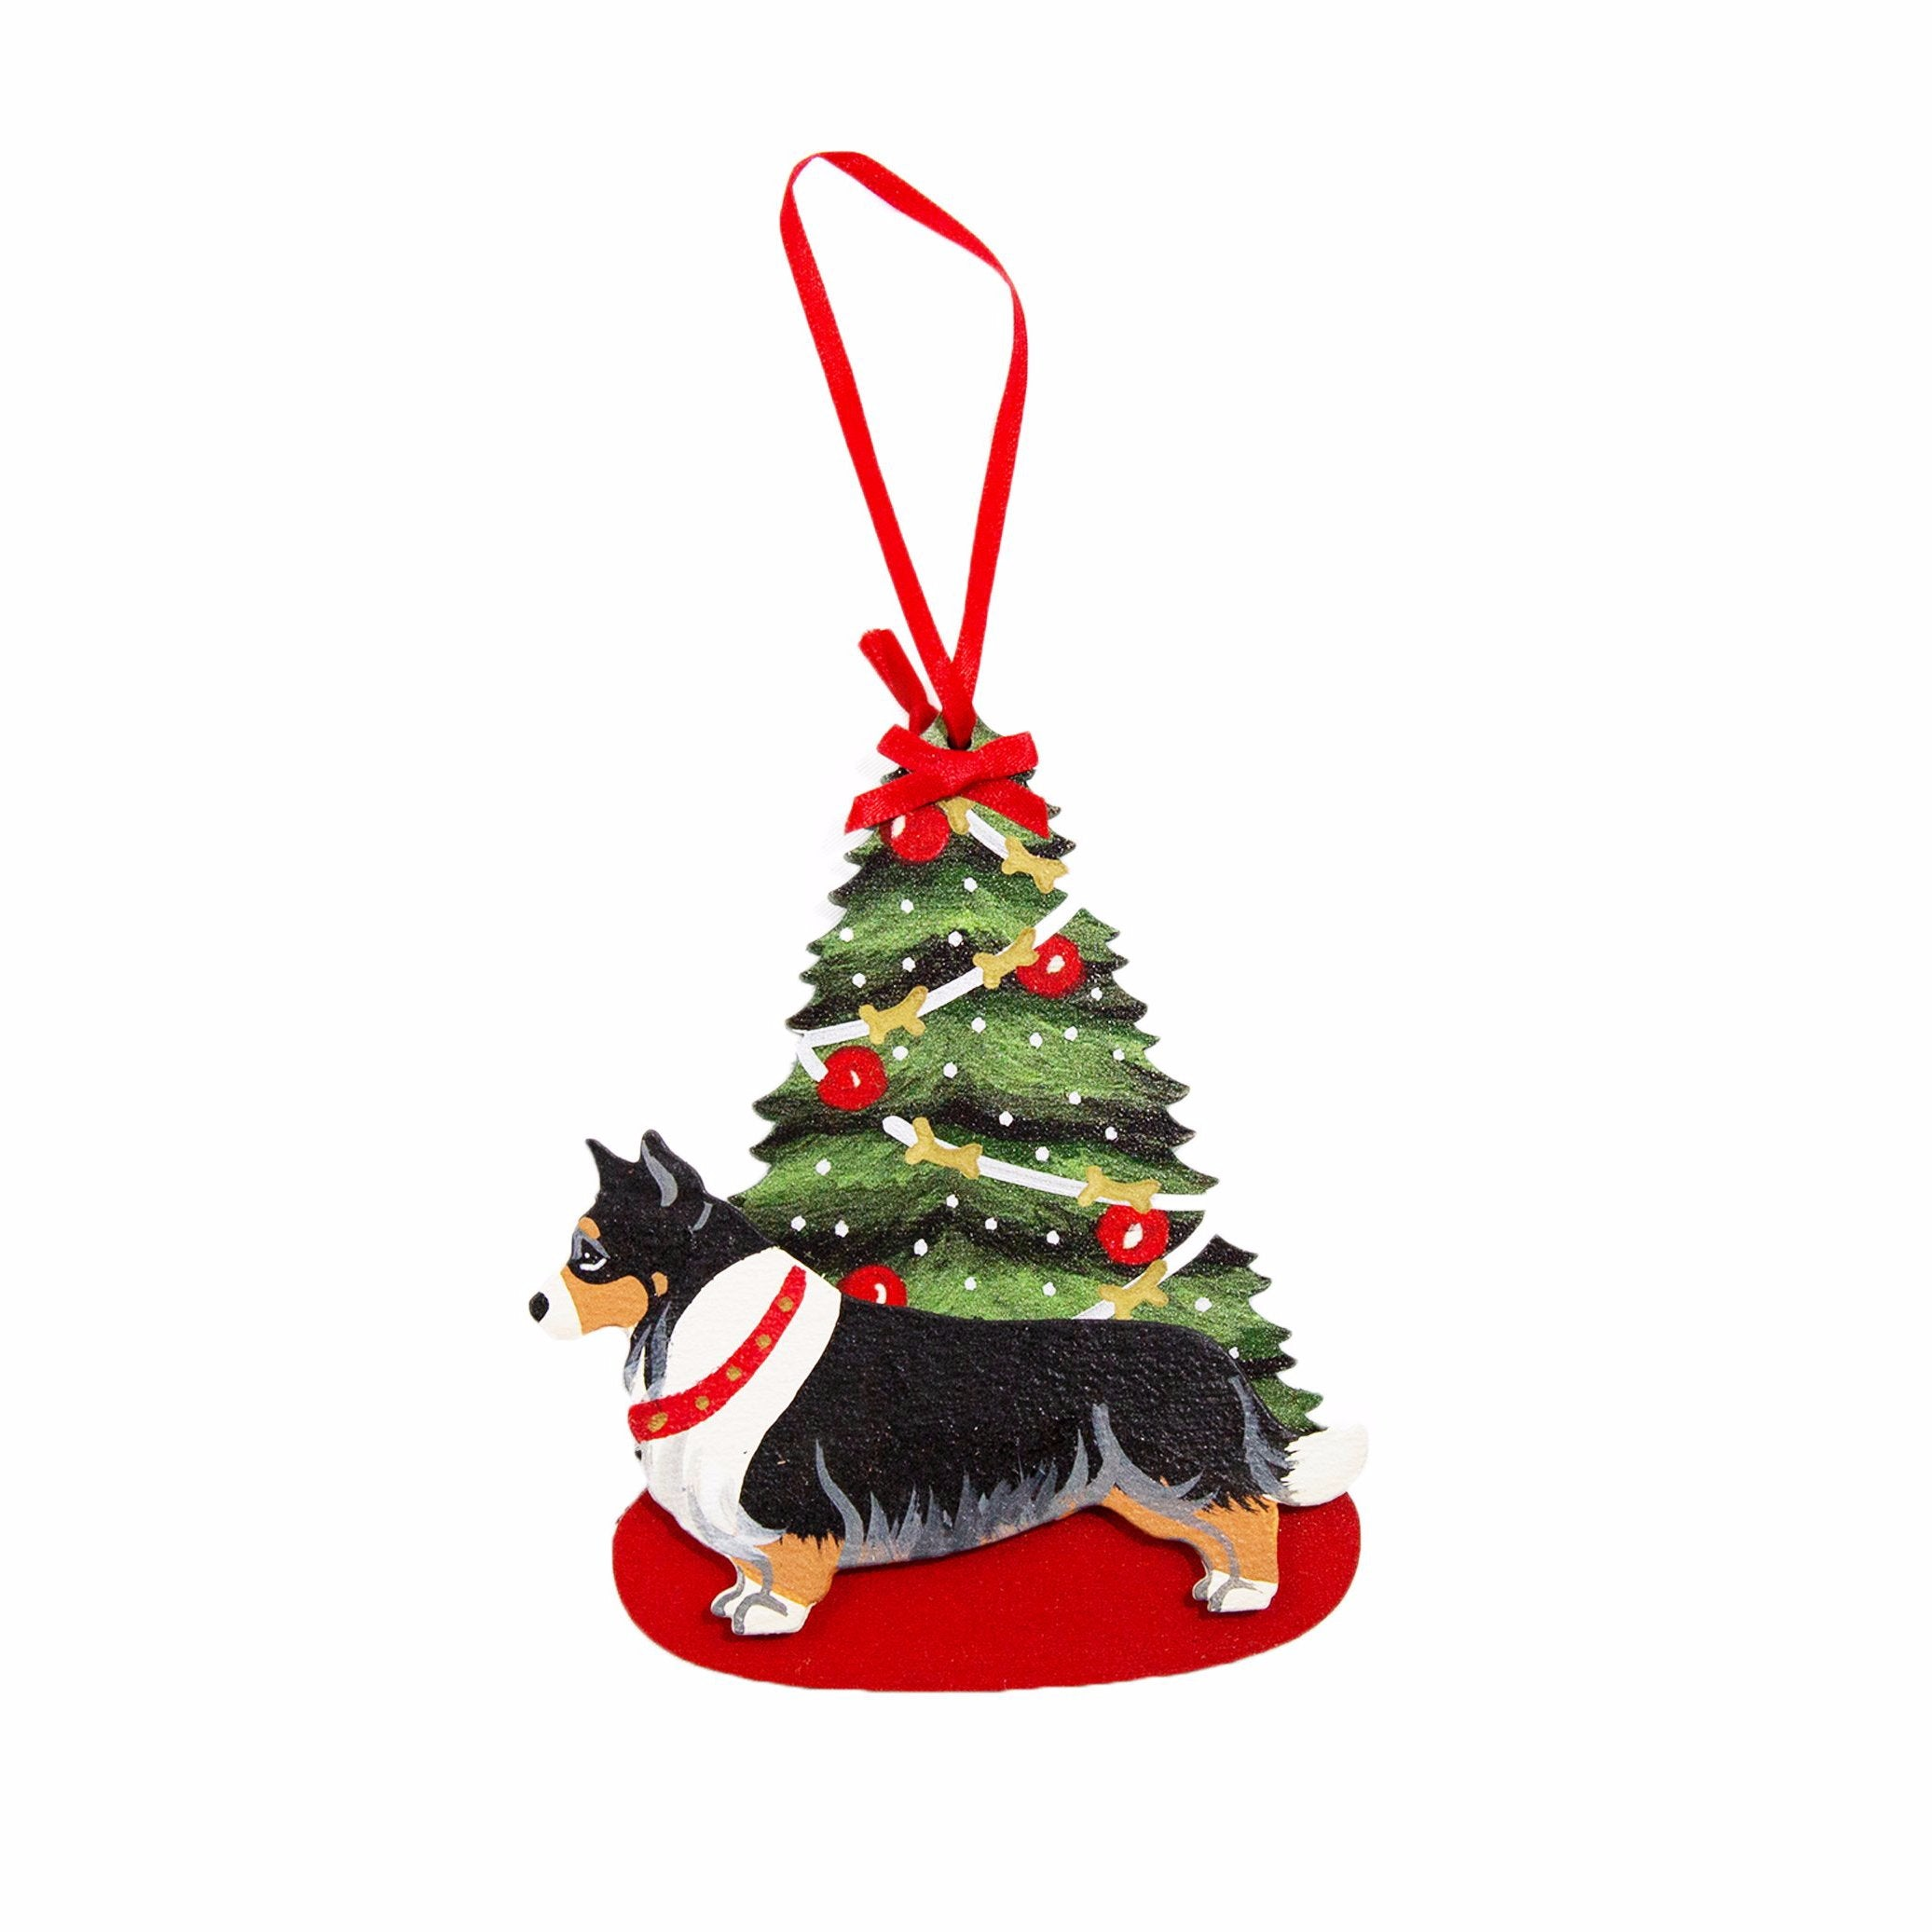 Christmas Holiday Pine Tree Dog Breed Ornament BY Dandy Design